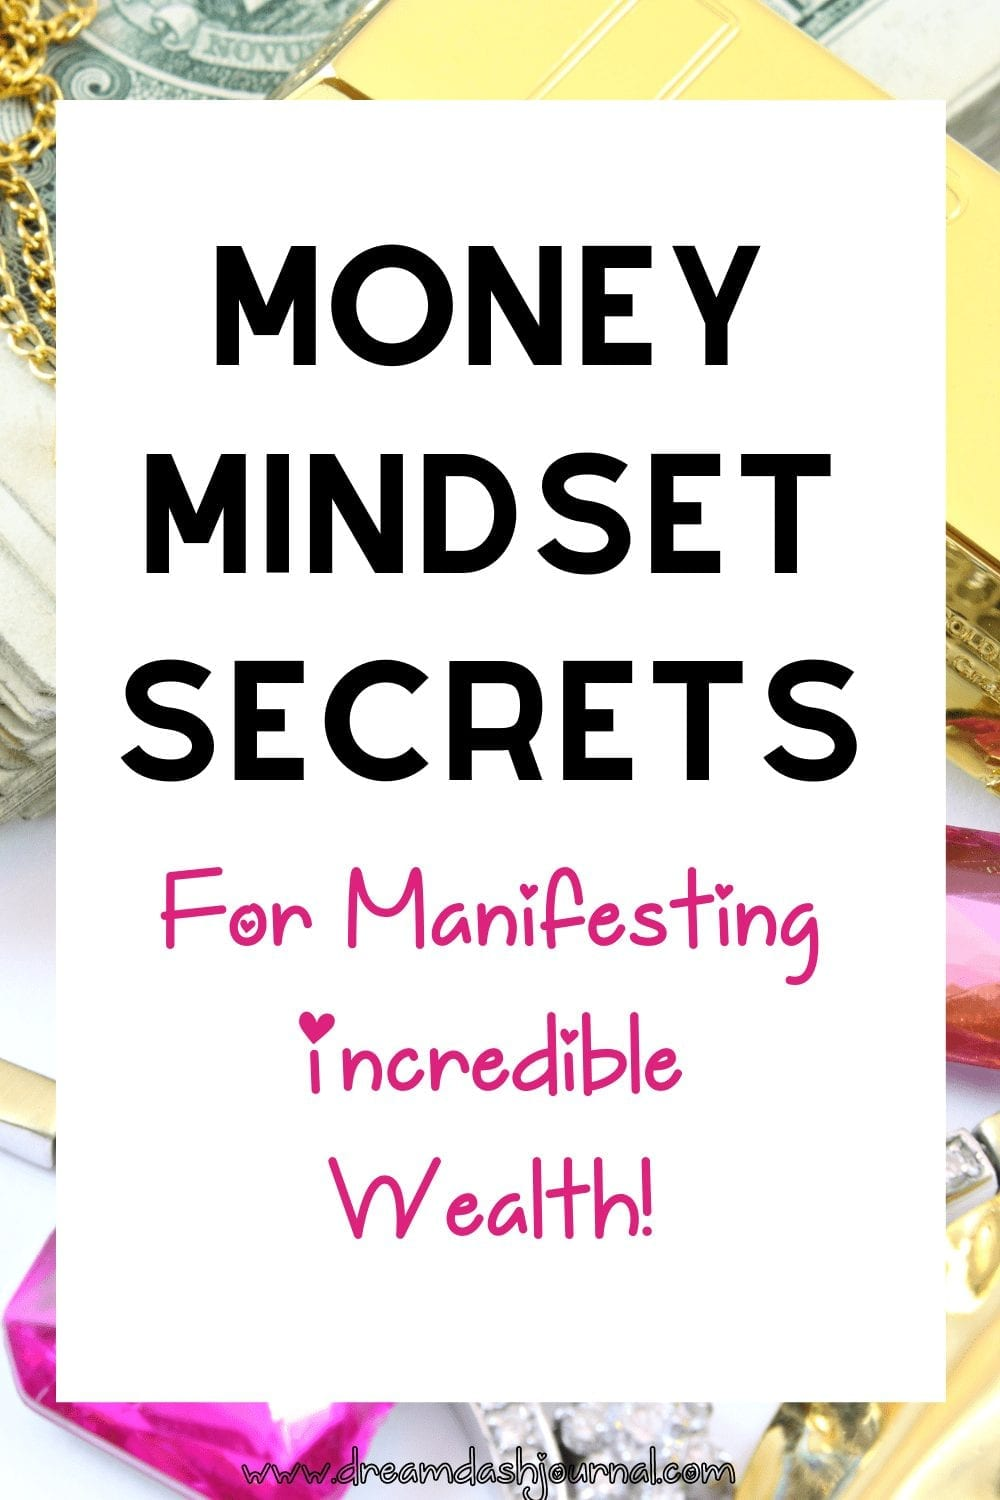 Money Mindset and Law of Attraction Techniques to Manifest Wealth & Abundance